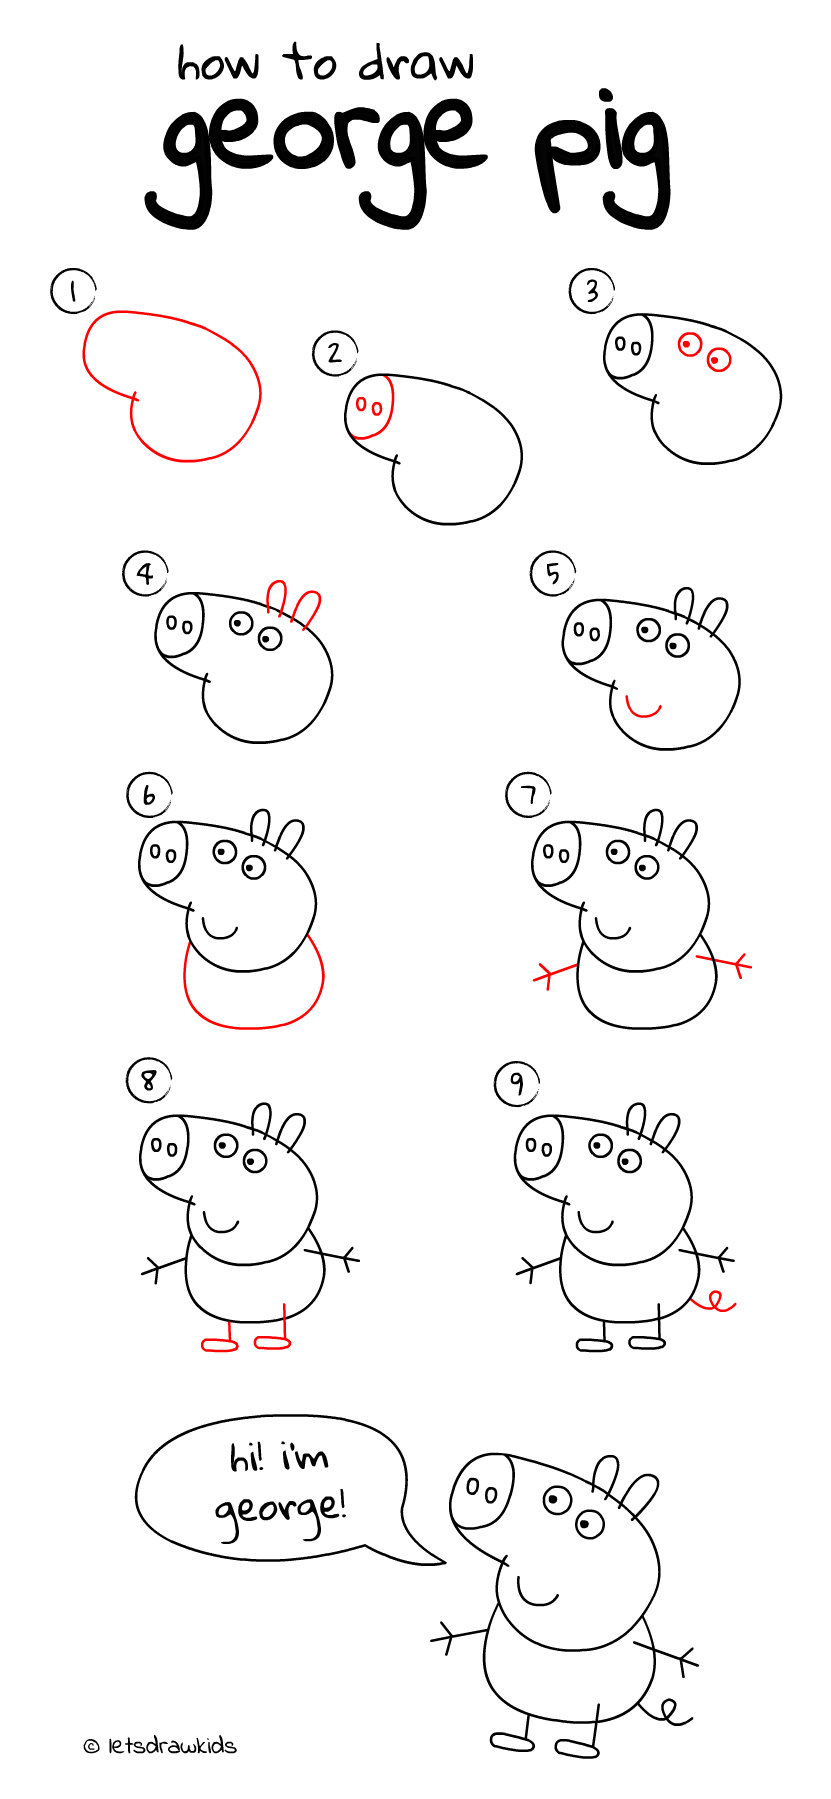 How To Draw George Pig Easy Drawing Step By Step Perfect For Kids Let S Draw Kids Http Letsdrawkids Com George Pig Easy Drawings Drawing Videos For Kids